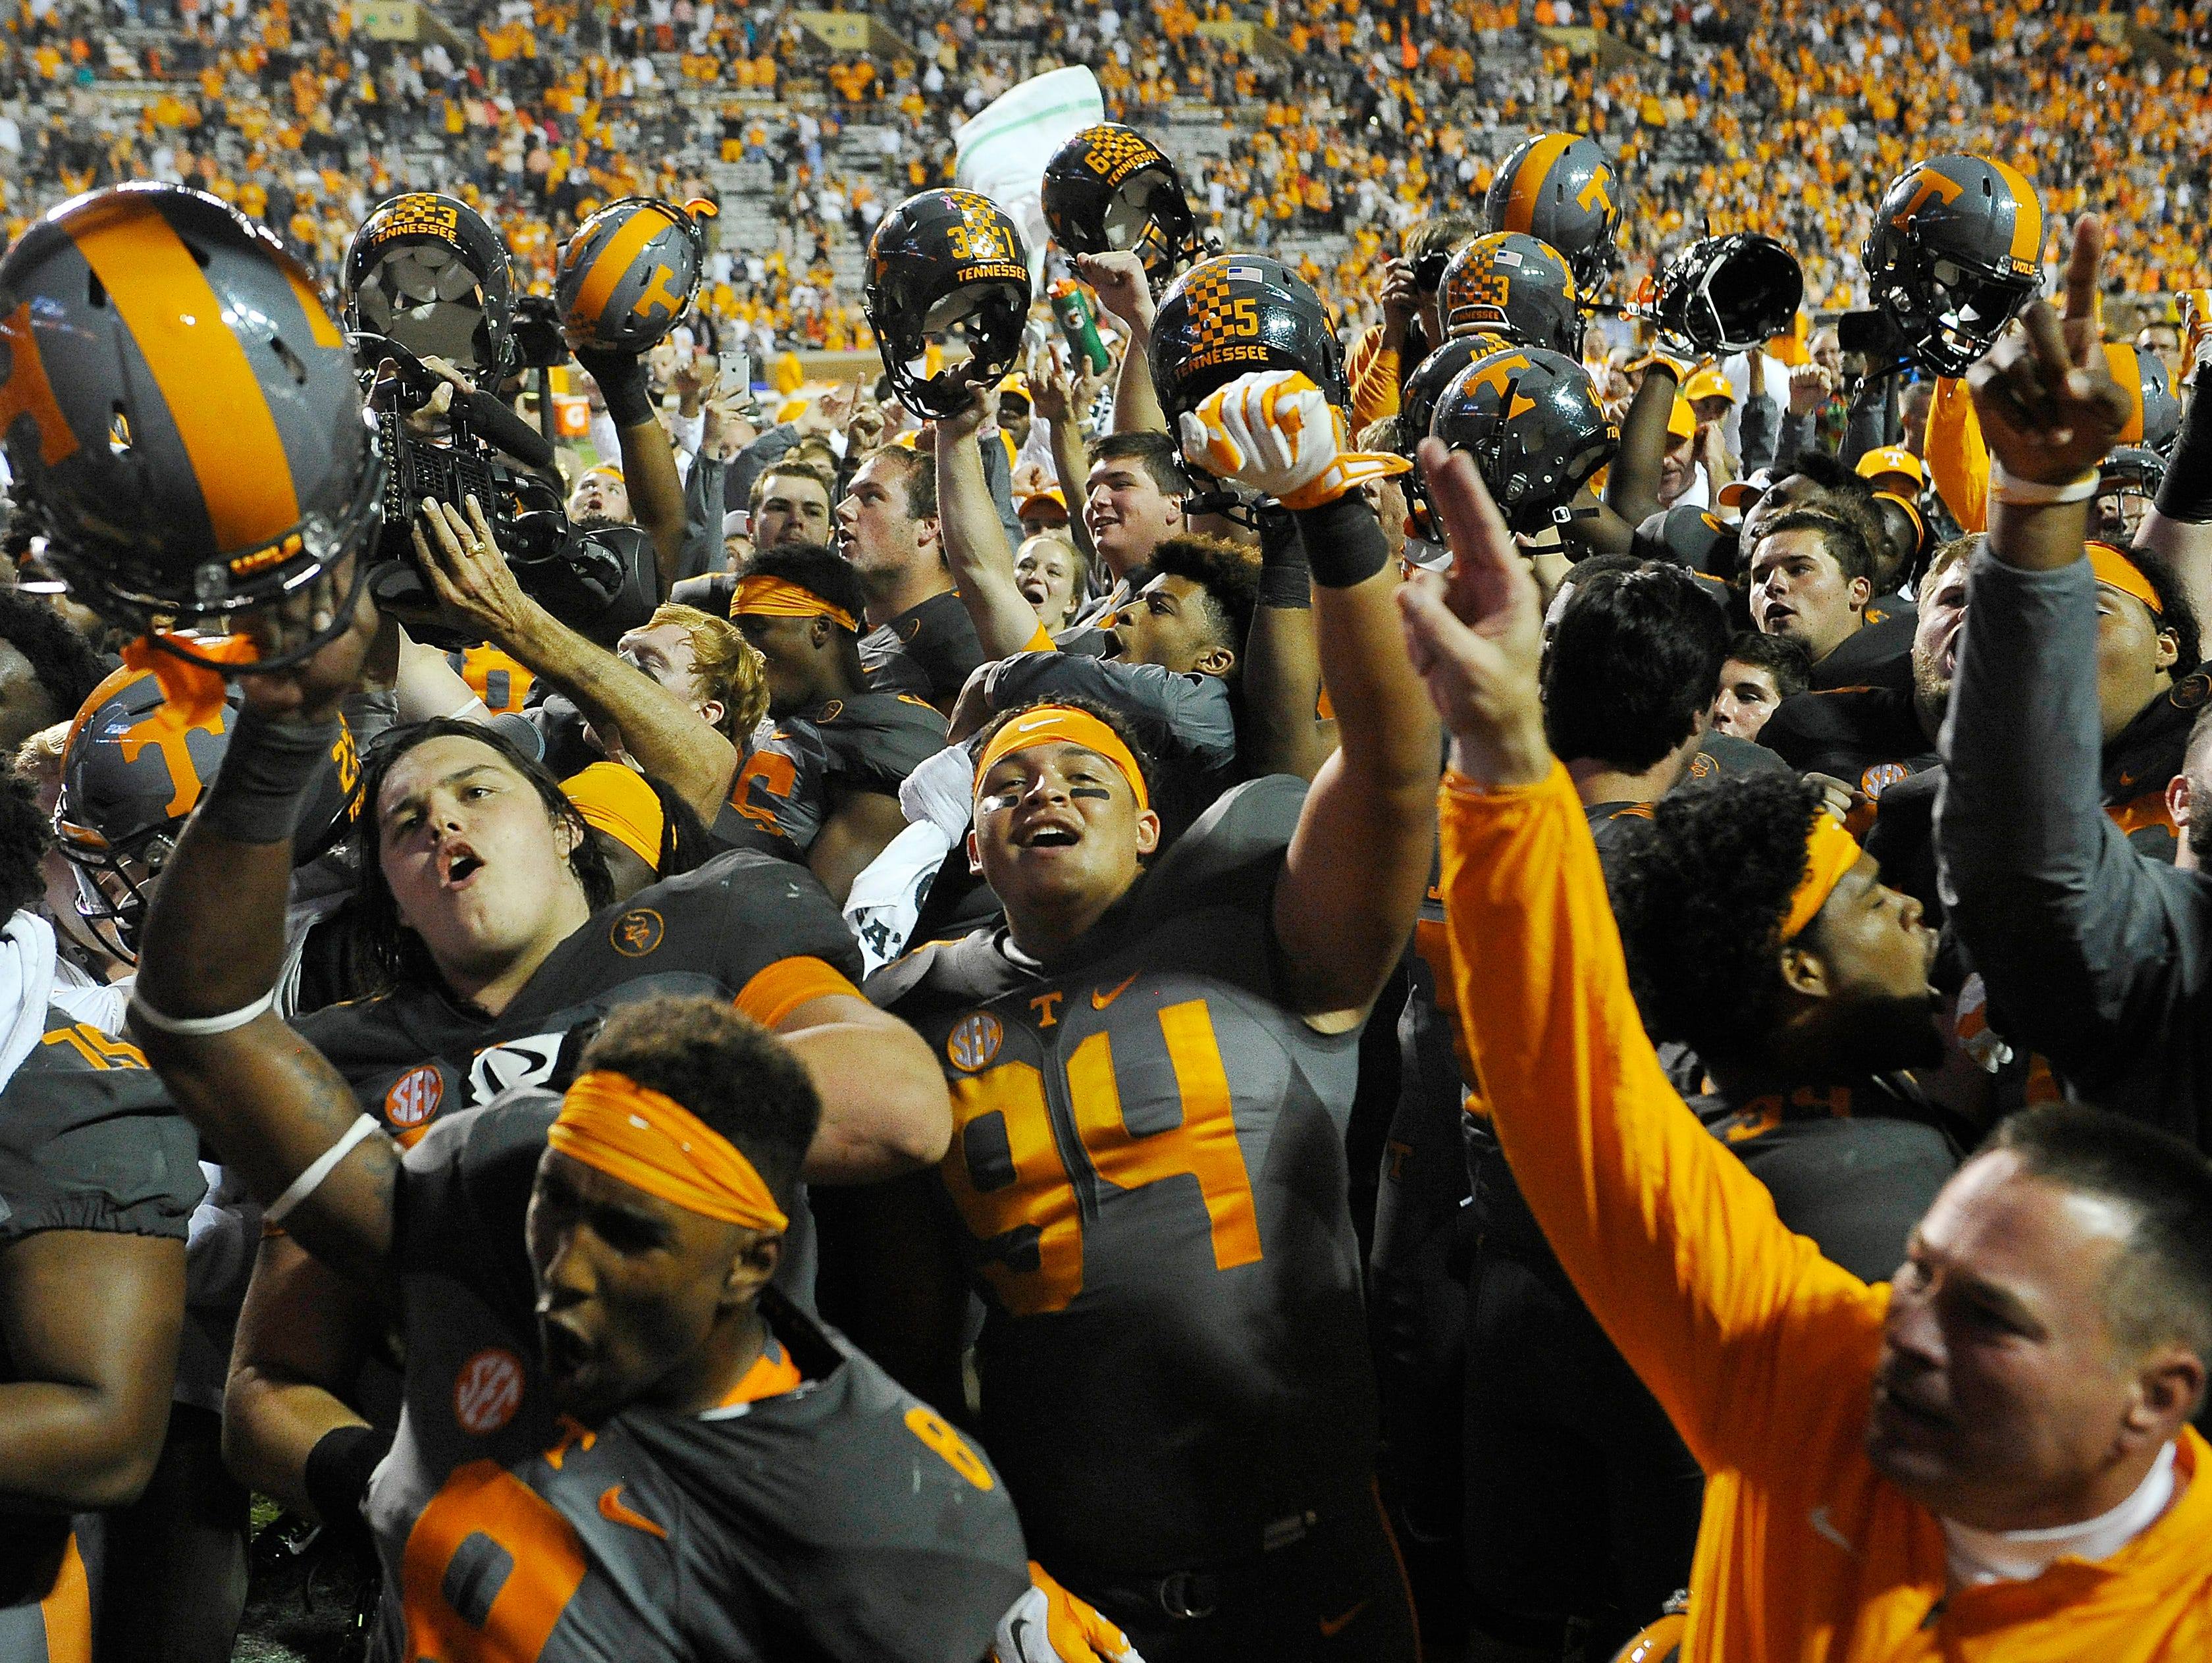 Coach Butch Jones and his team celebrate their 38-31 victory over Georgia on Oct. 10, 2015.